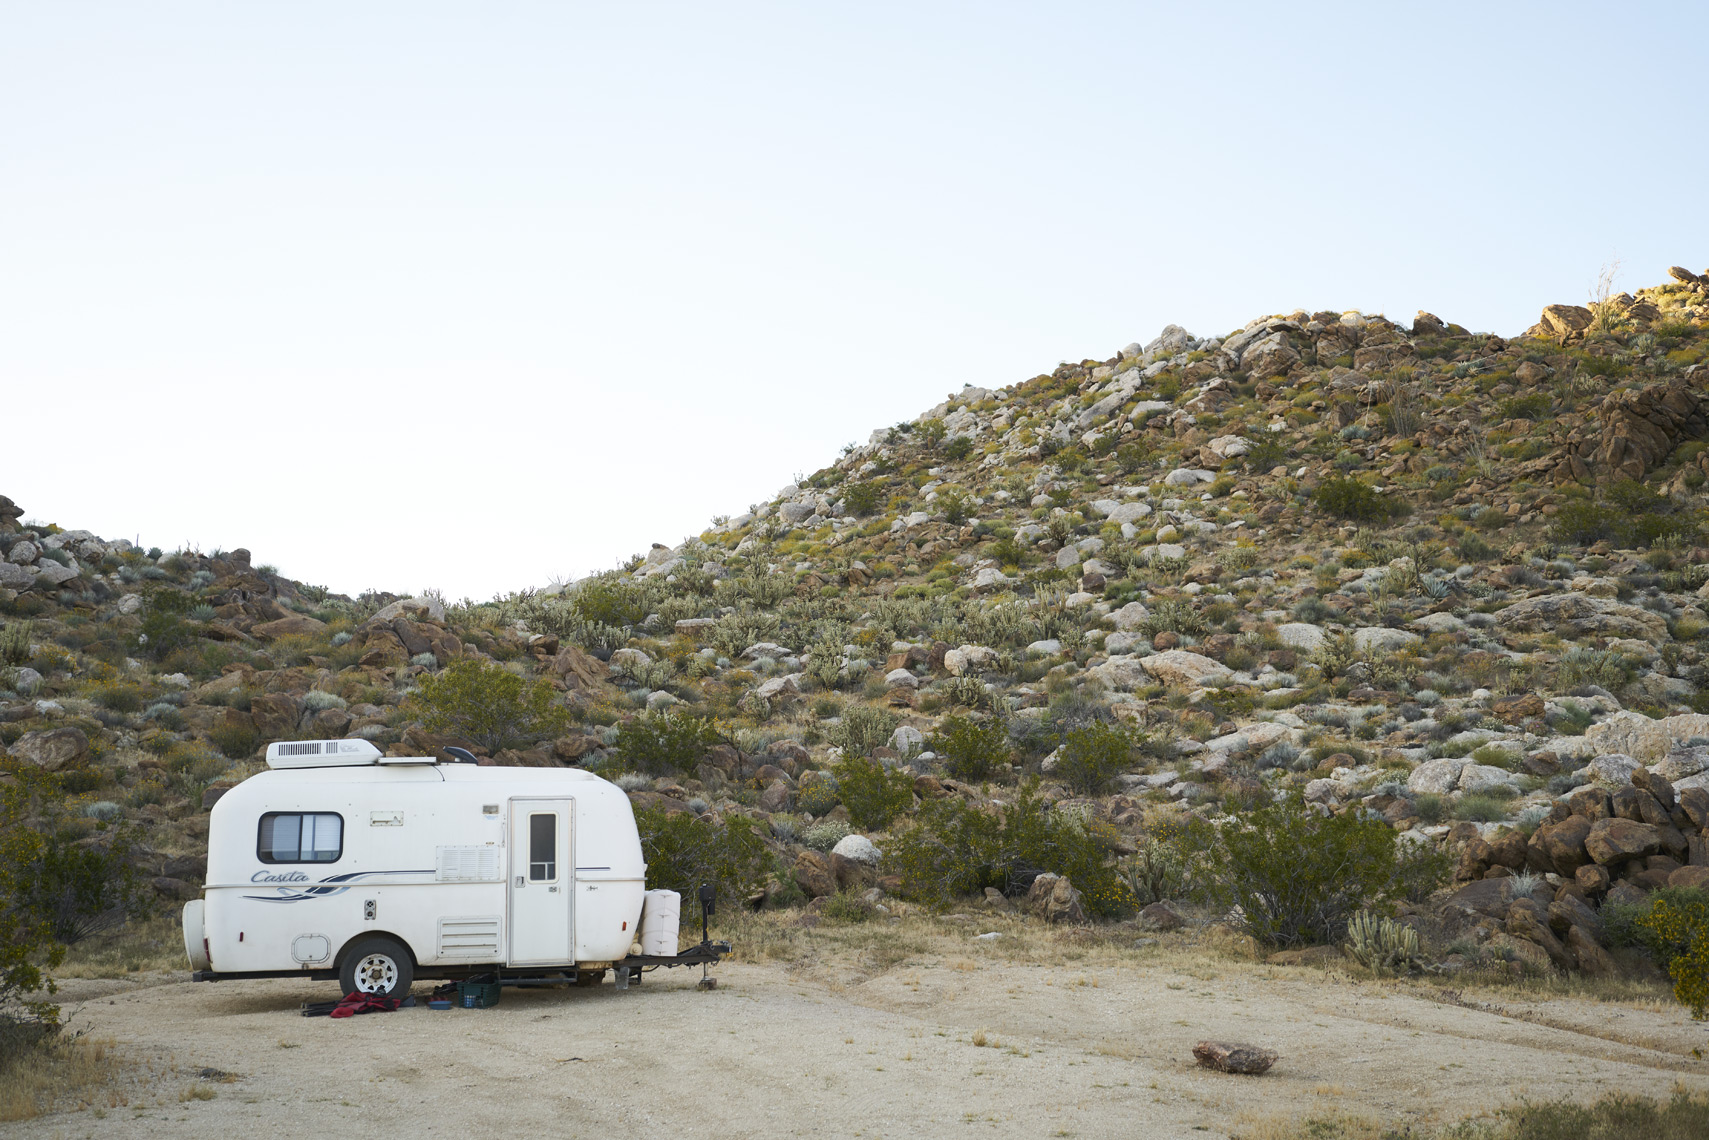 Trailer in Anza-Borrego State Park California Sean Dagen Photography